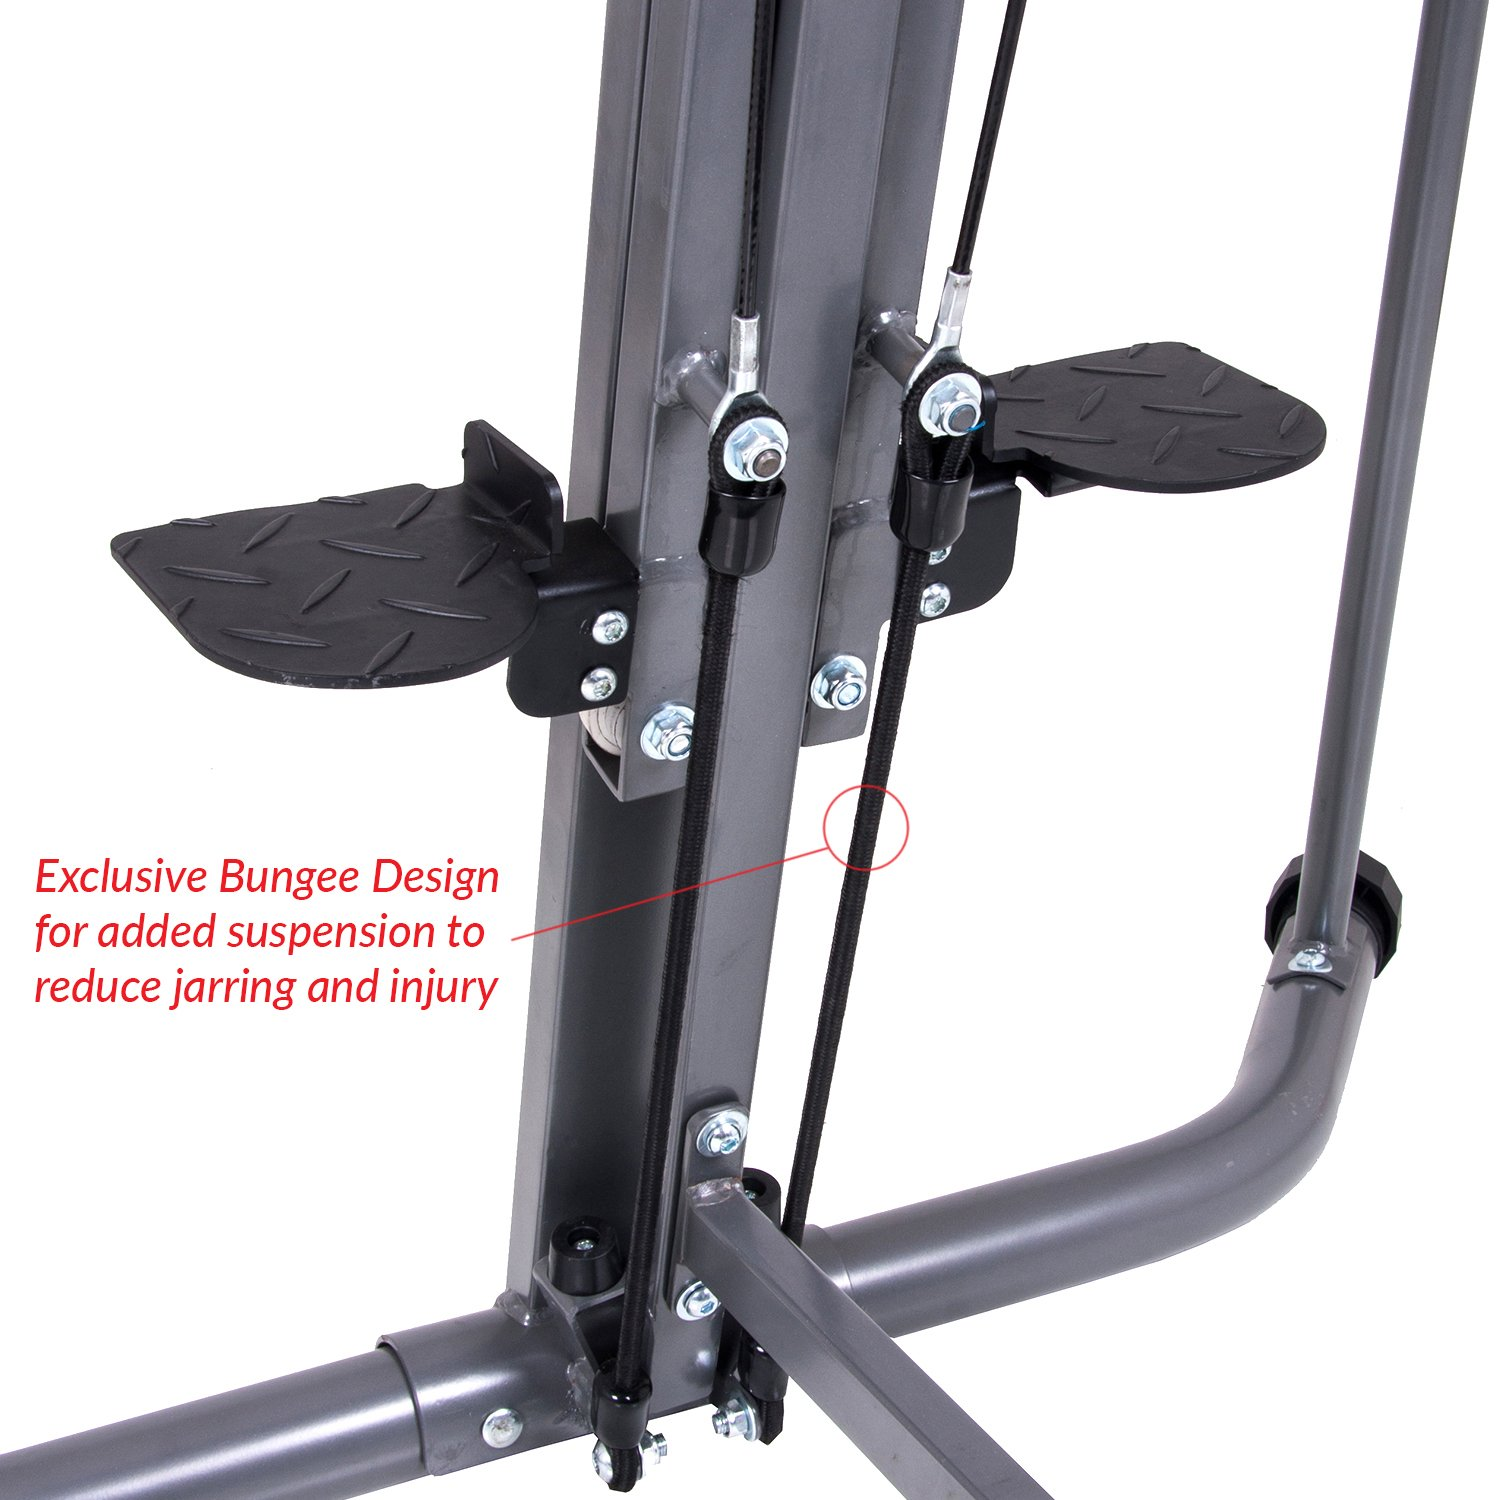 Body Champ Leisa Hart Cardio Vertical Stepper Climber / Includes Assembly Video, Meal Plan Guide, Workout Video access BCR890 by Body Champ (Image #6)